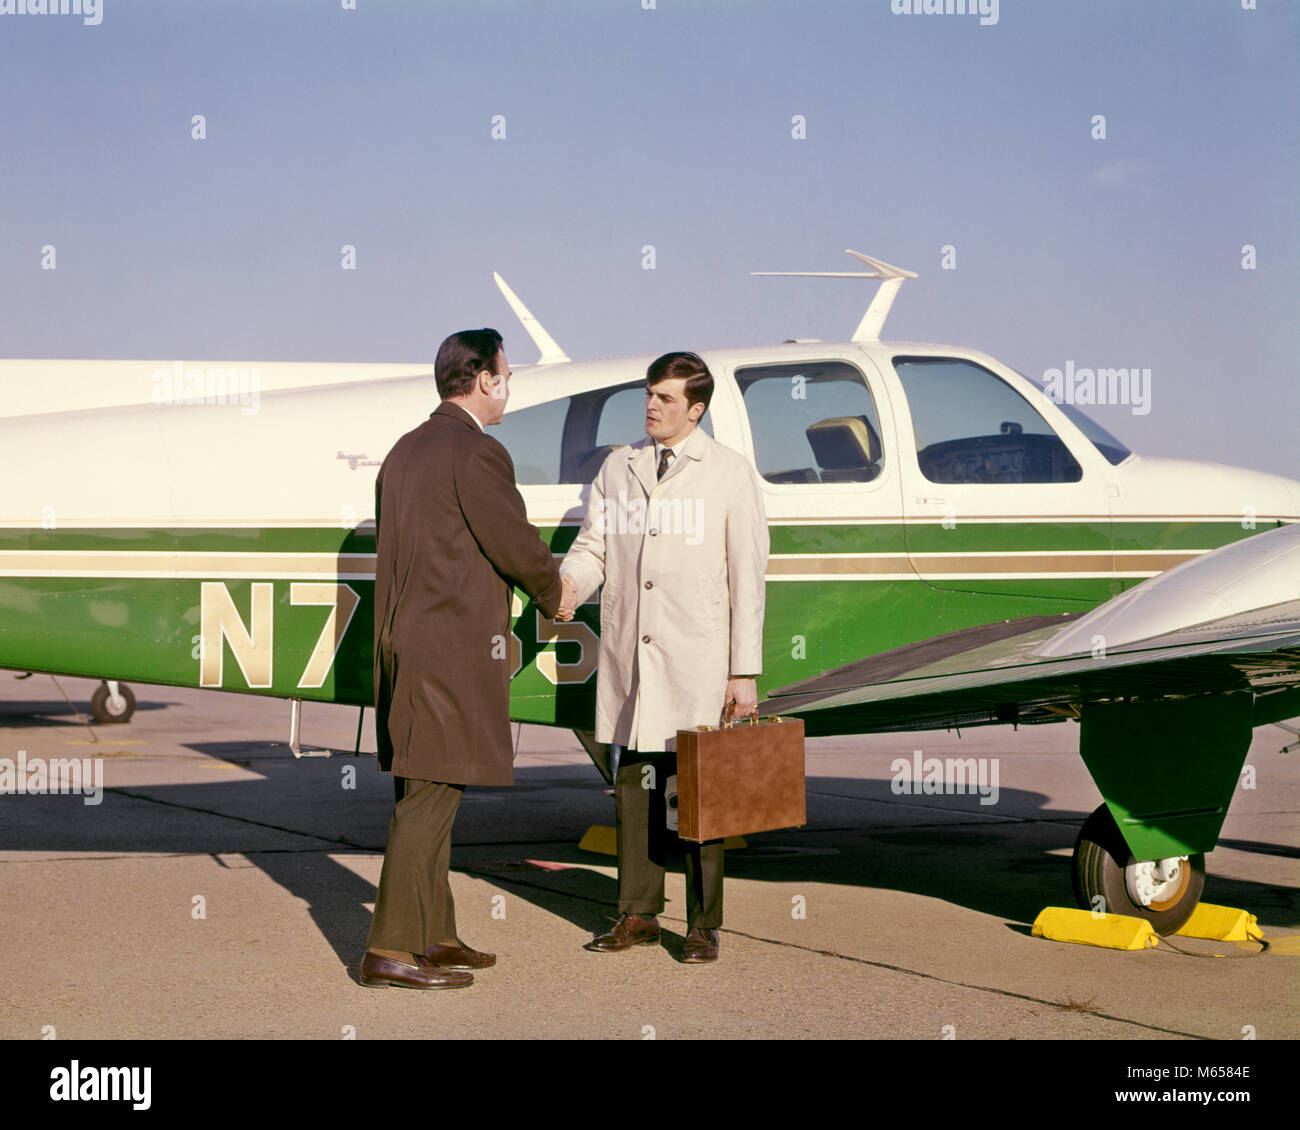 1960s TWO BUSINESS MEN SHAKING HANDS STANDING BESIDE SMALL PRIVATE AIRPLANE - ka1665 HAR001 HARS INFORMATION CAUCASIAN - Stock Image